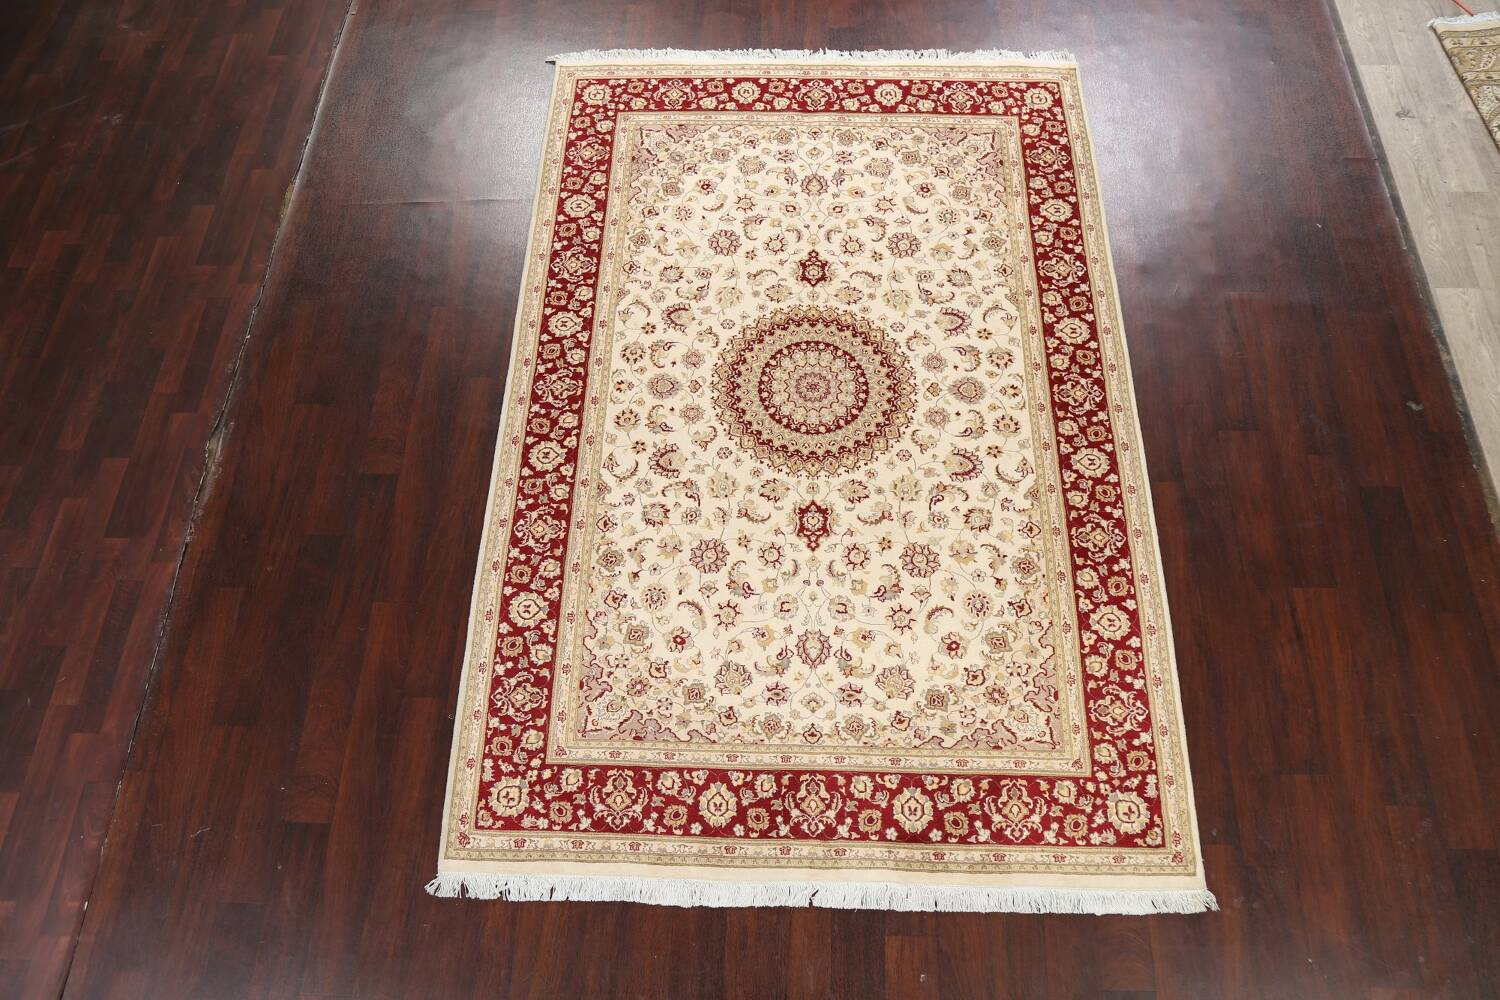 100% Vegetable Dye Floral Tabriz Oriental Area Rug 6x9 image 2